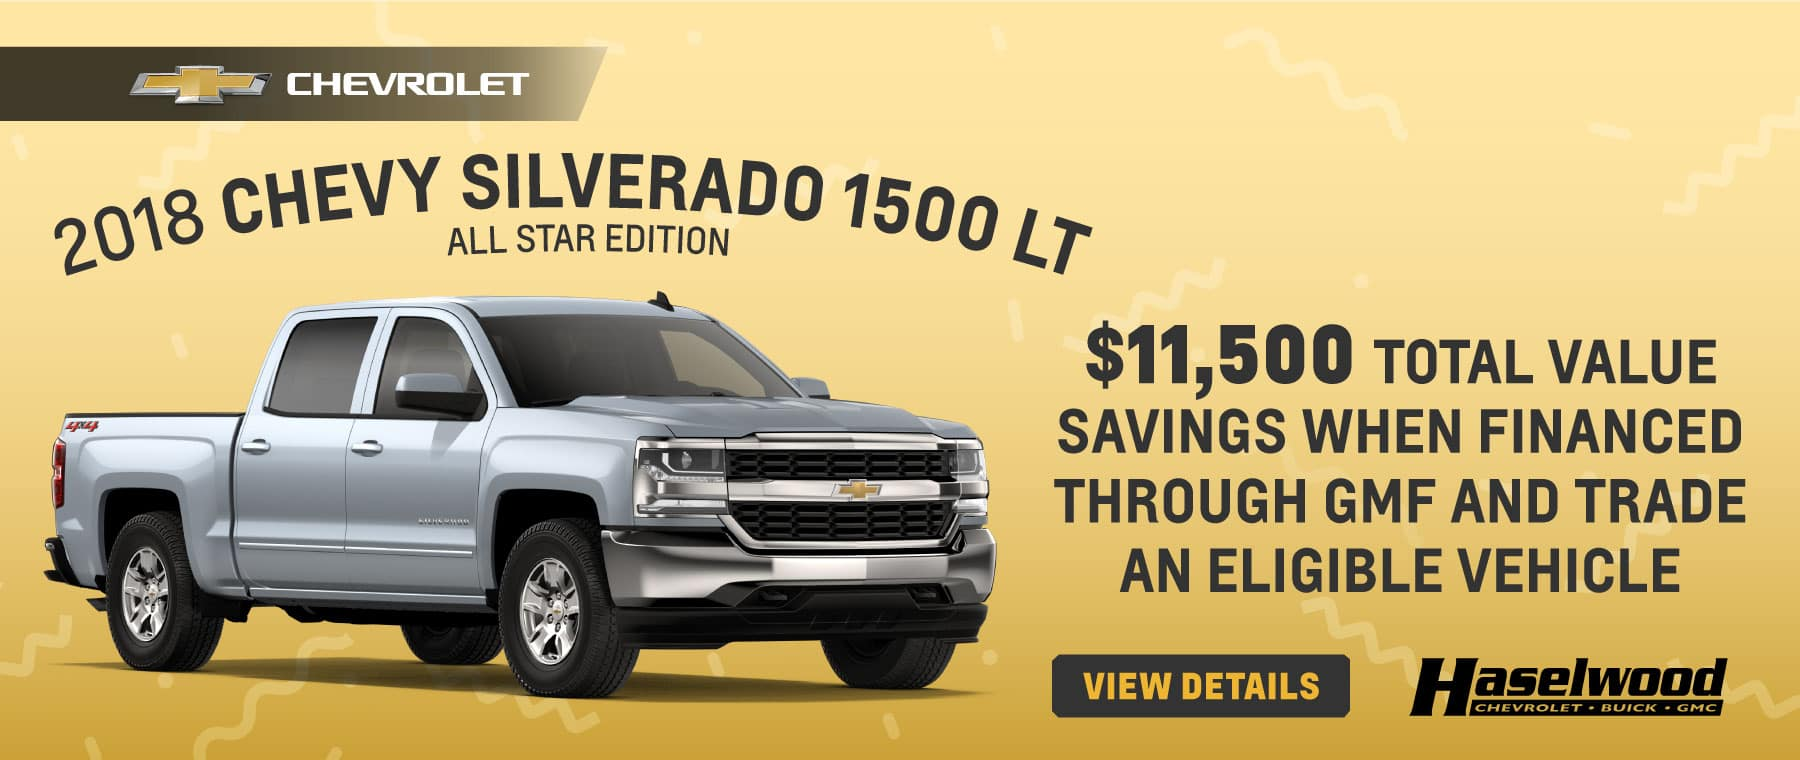 2018 Chevrolet Silverado 1500 LT Crew All Star Edition   $11,500 Total Value Savings when financed through GMF and trade an eligible vehicle